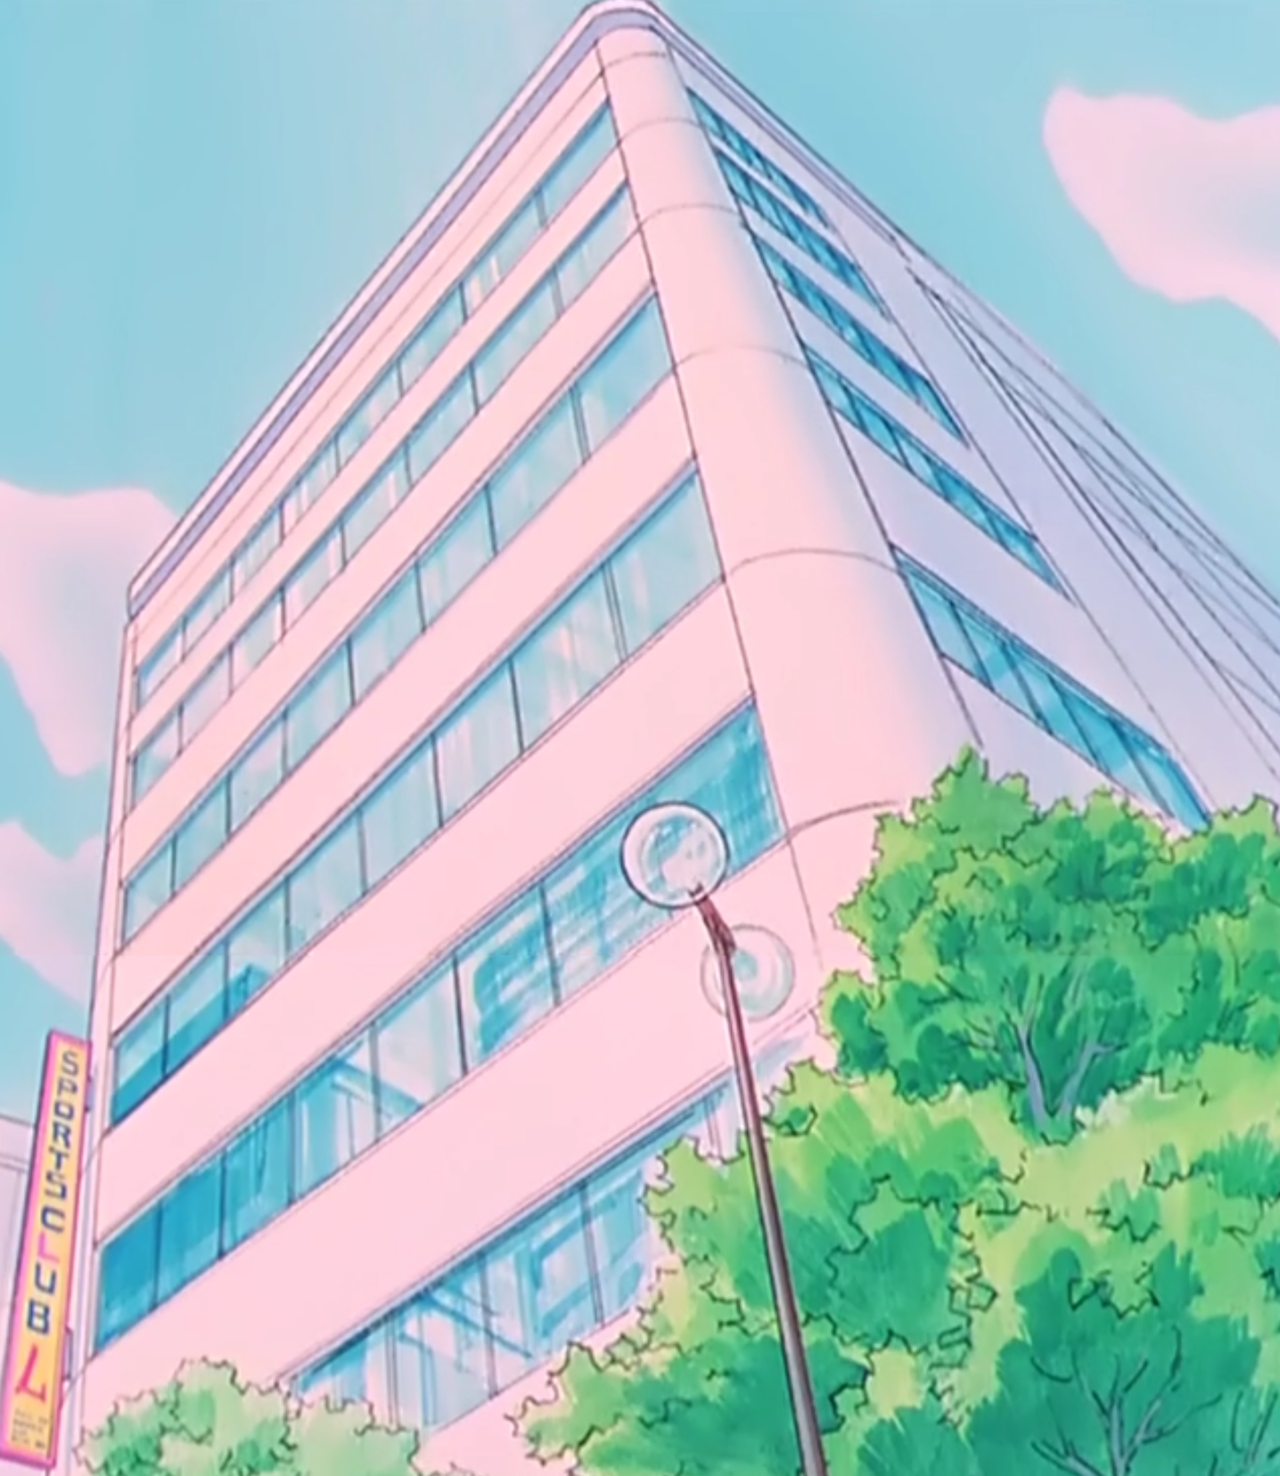 Sailor Moon Scenery Anime Scenery Anime Background Aesthetic Anime